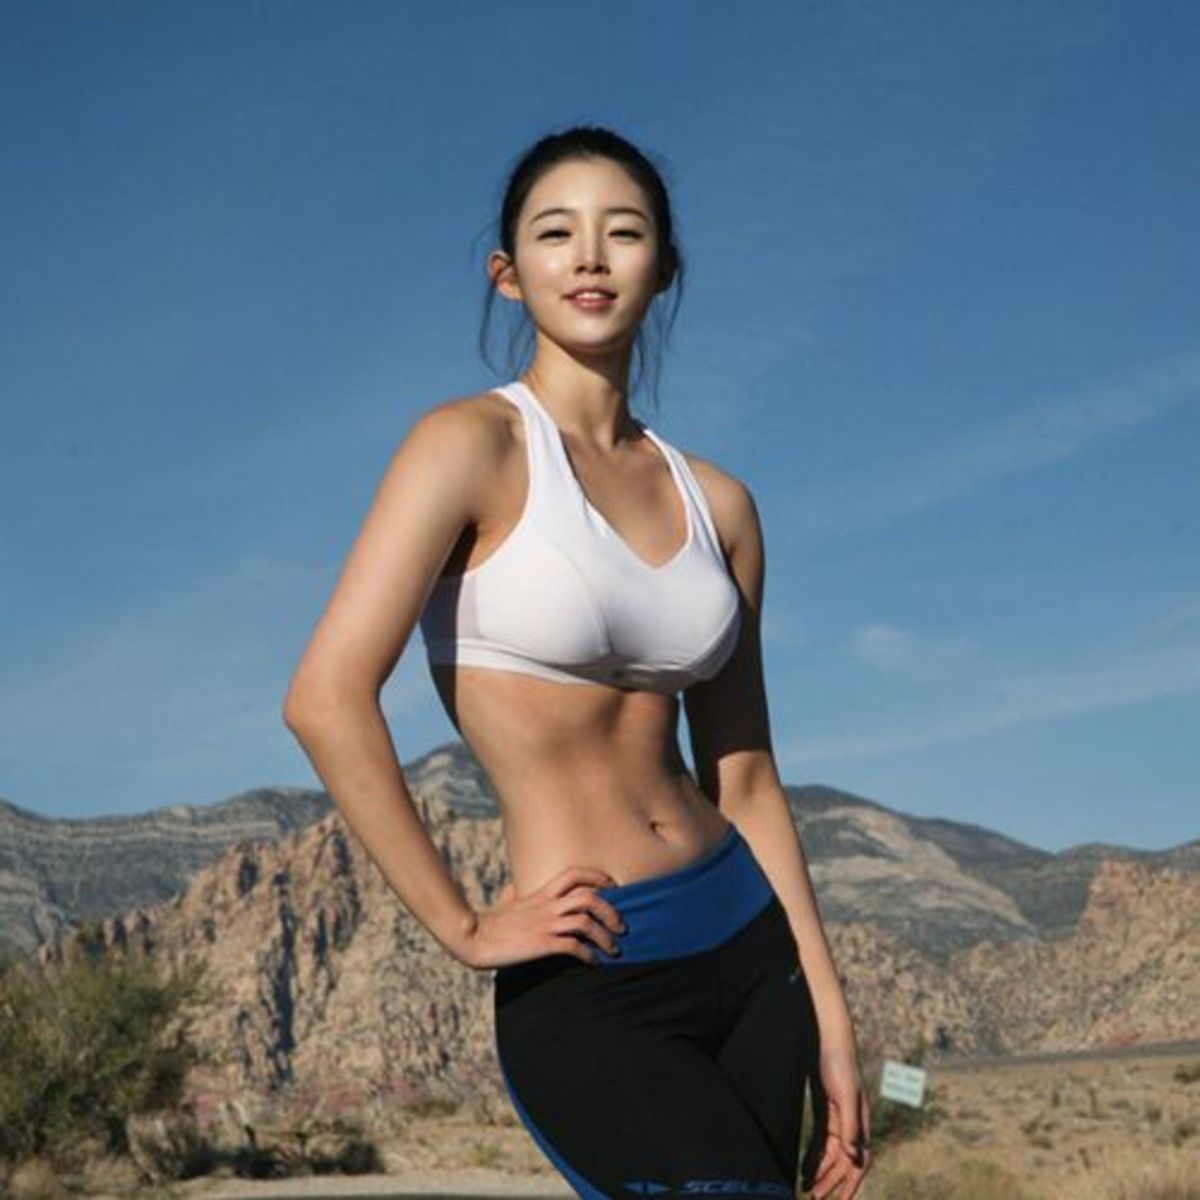 Yoo Seung Ok - Korean Fitness Girl